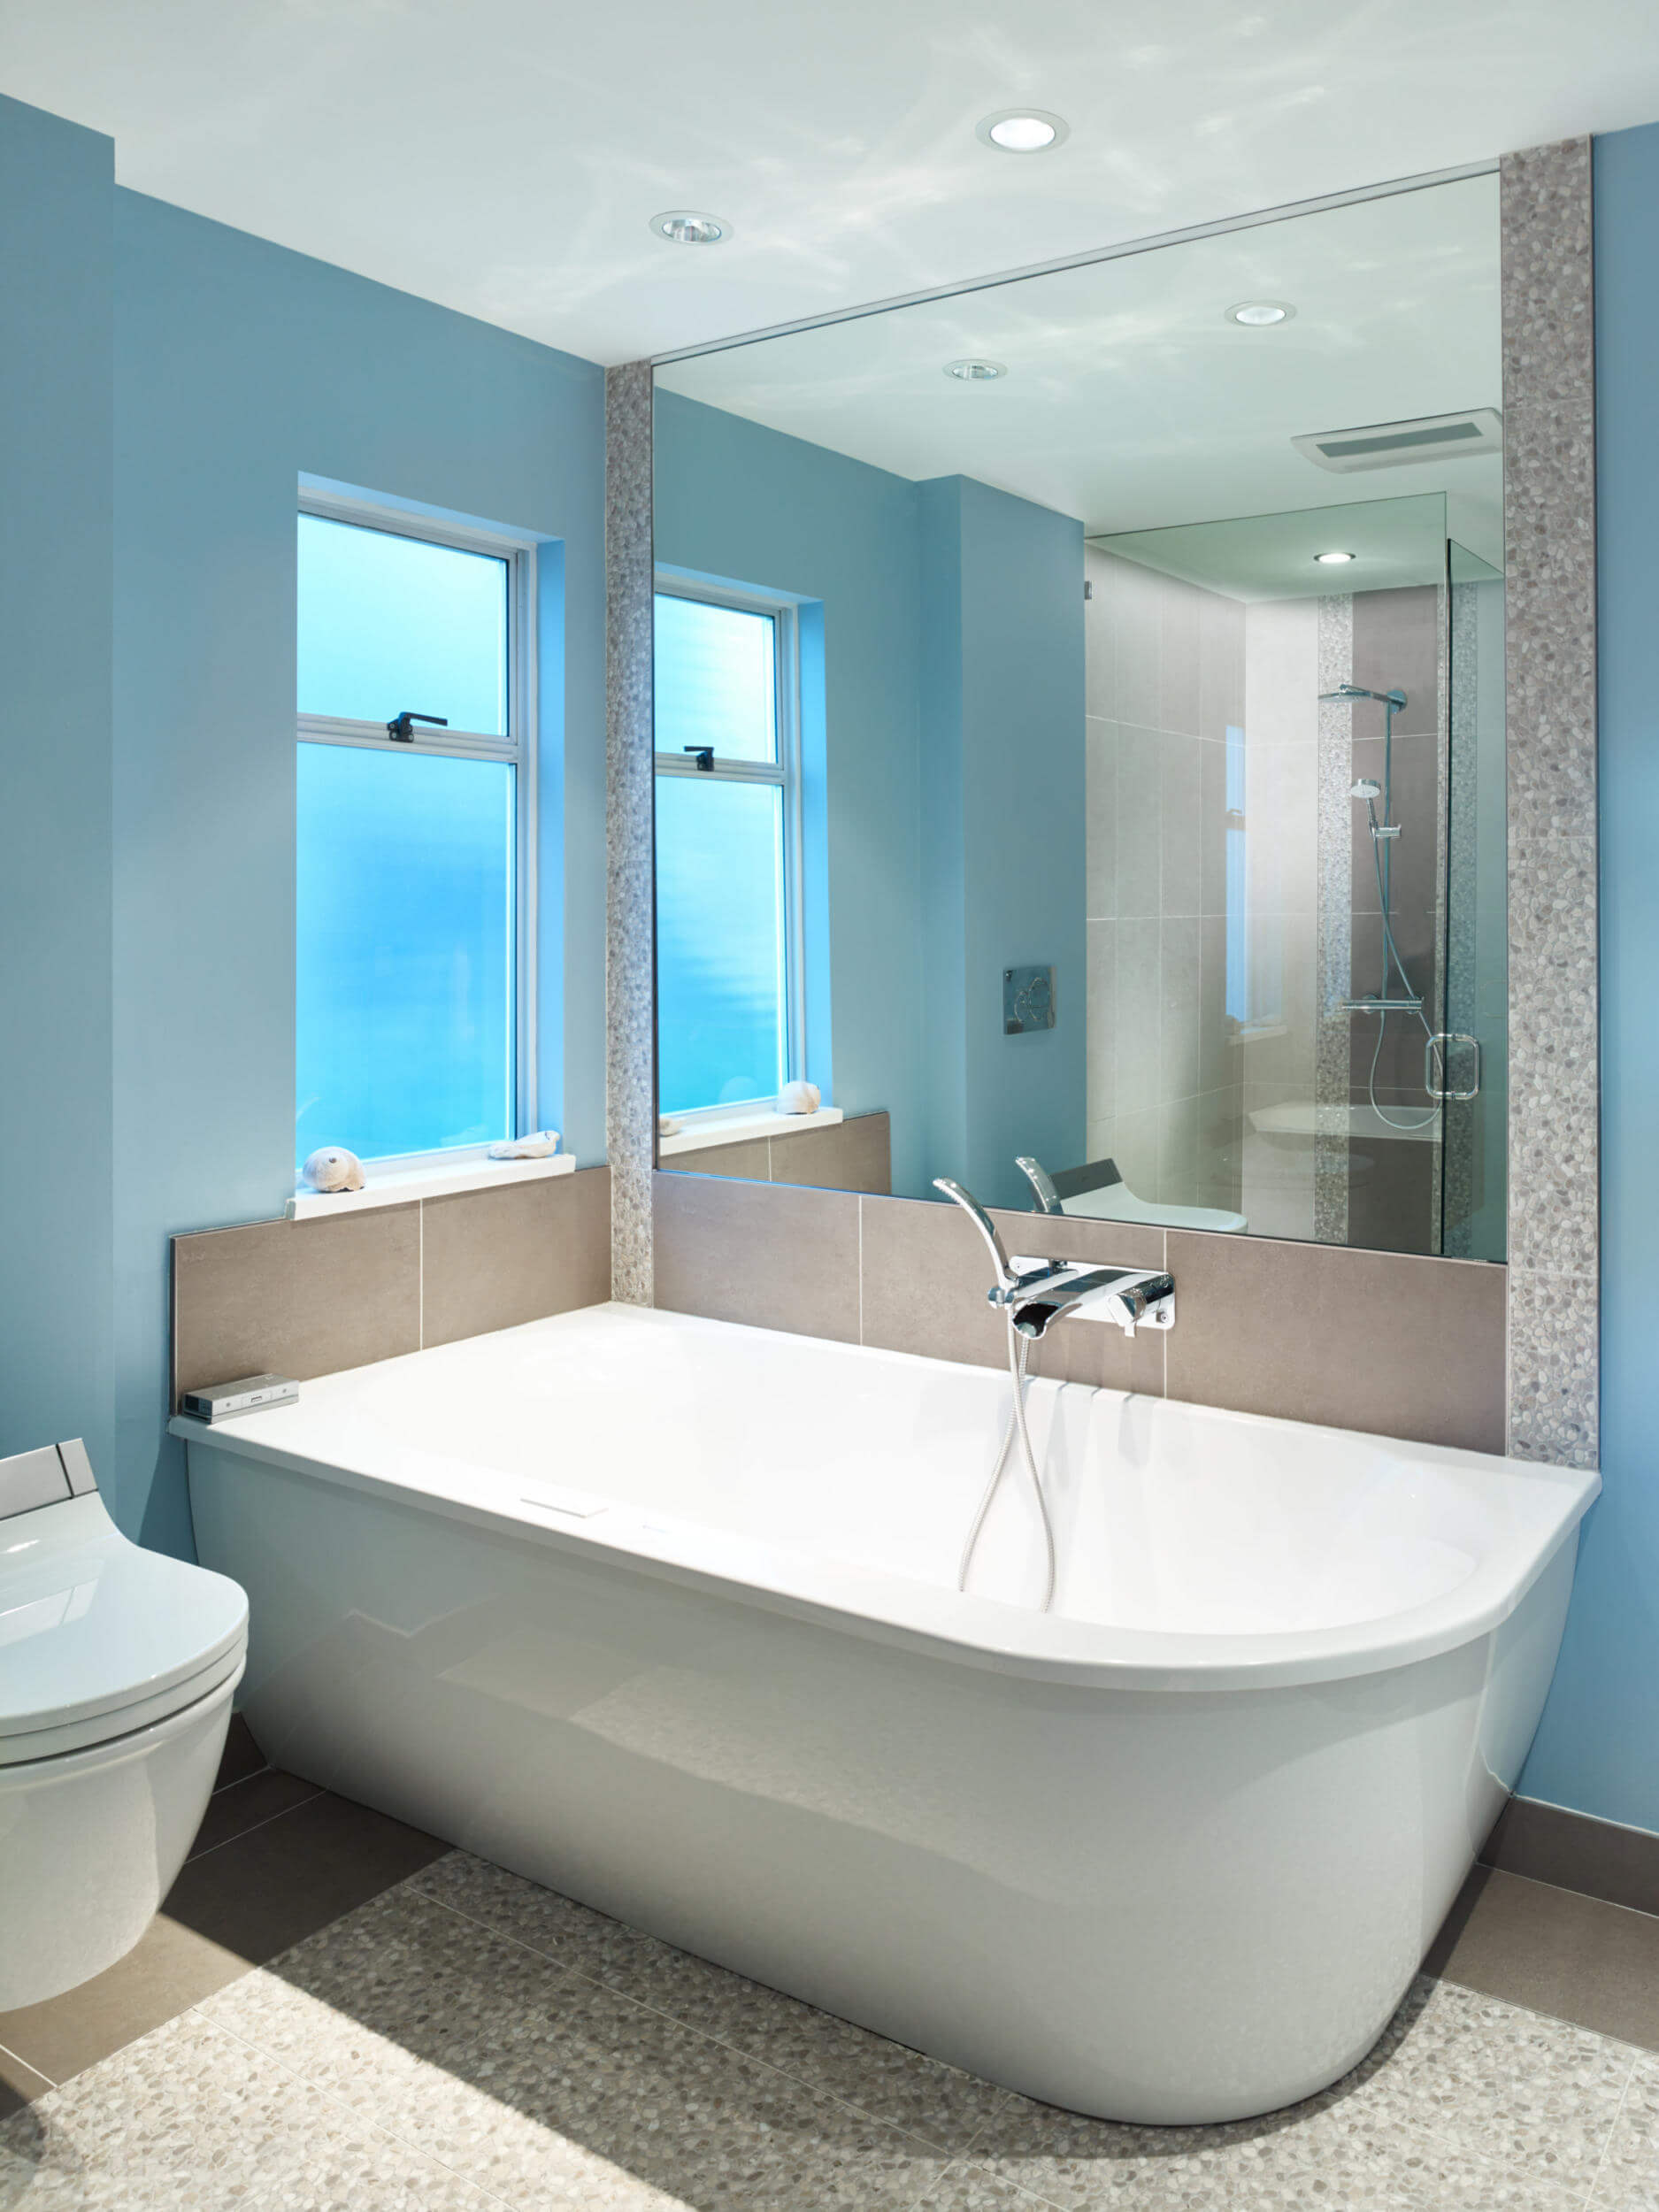 Badezimmer Renovation Blau Badezimmer Bathroom Renovation Revision Custom Home